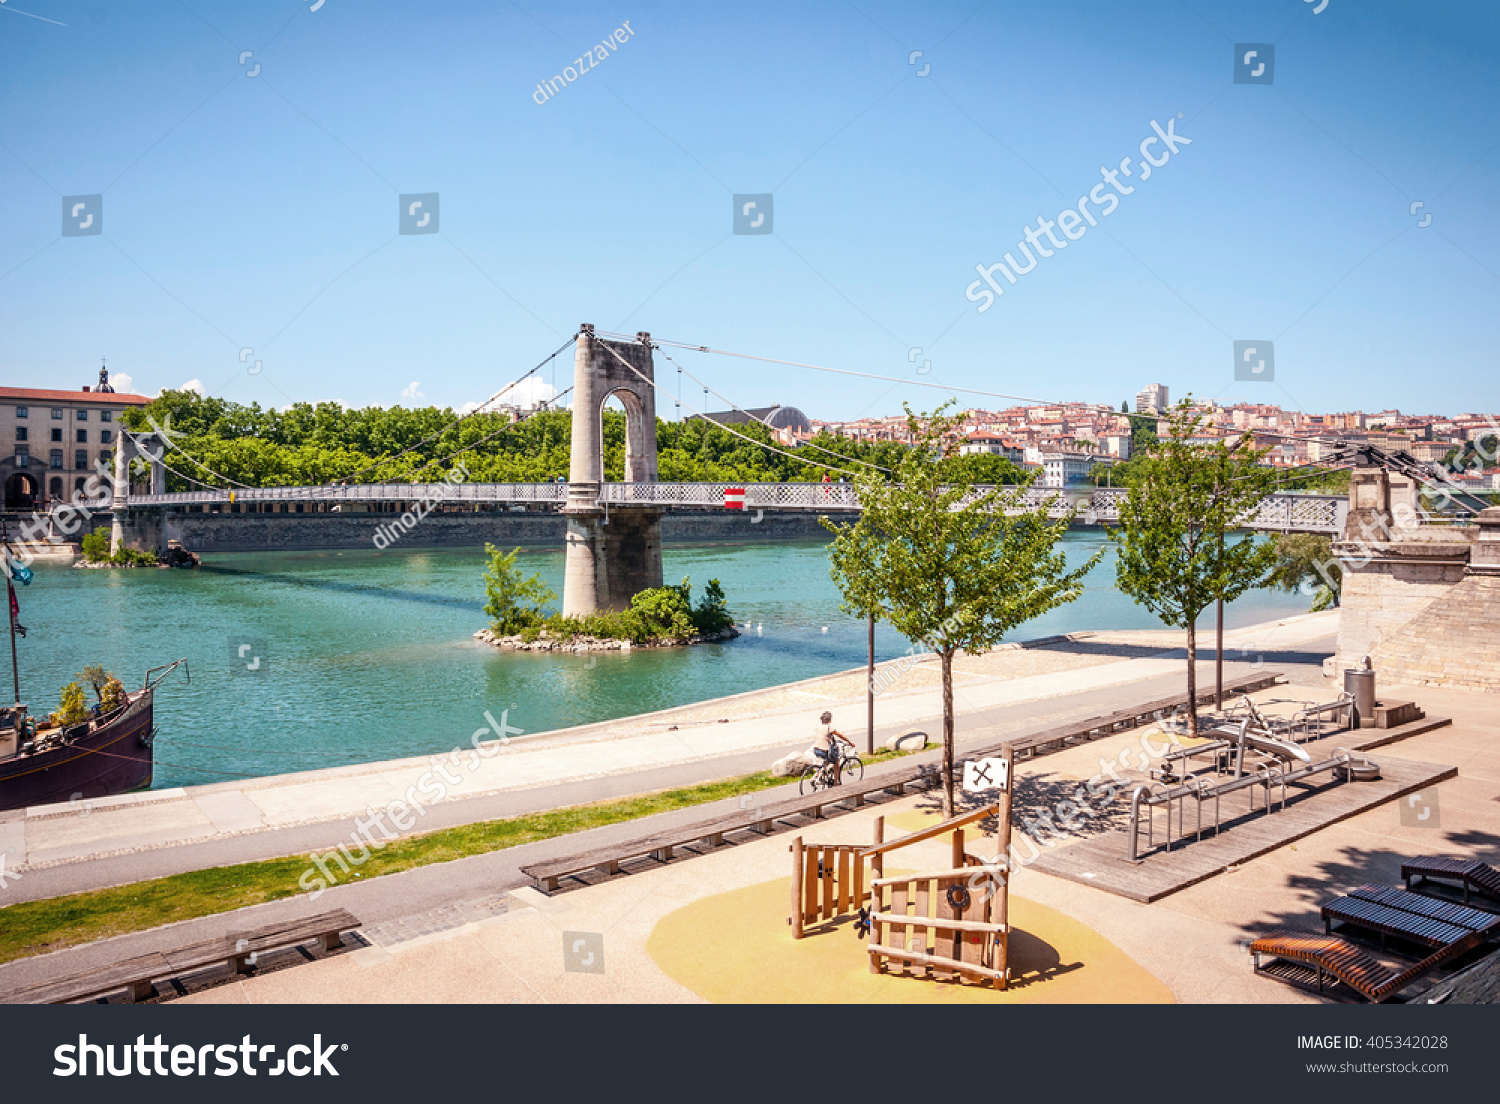 View on sunlit bridge over calm river in Lyon, France